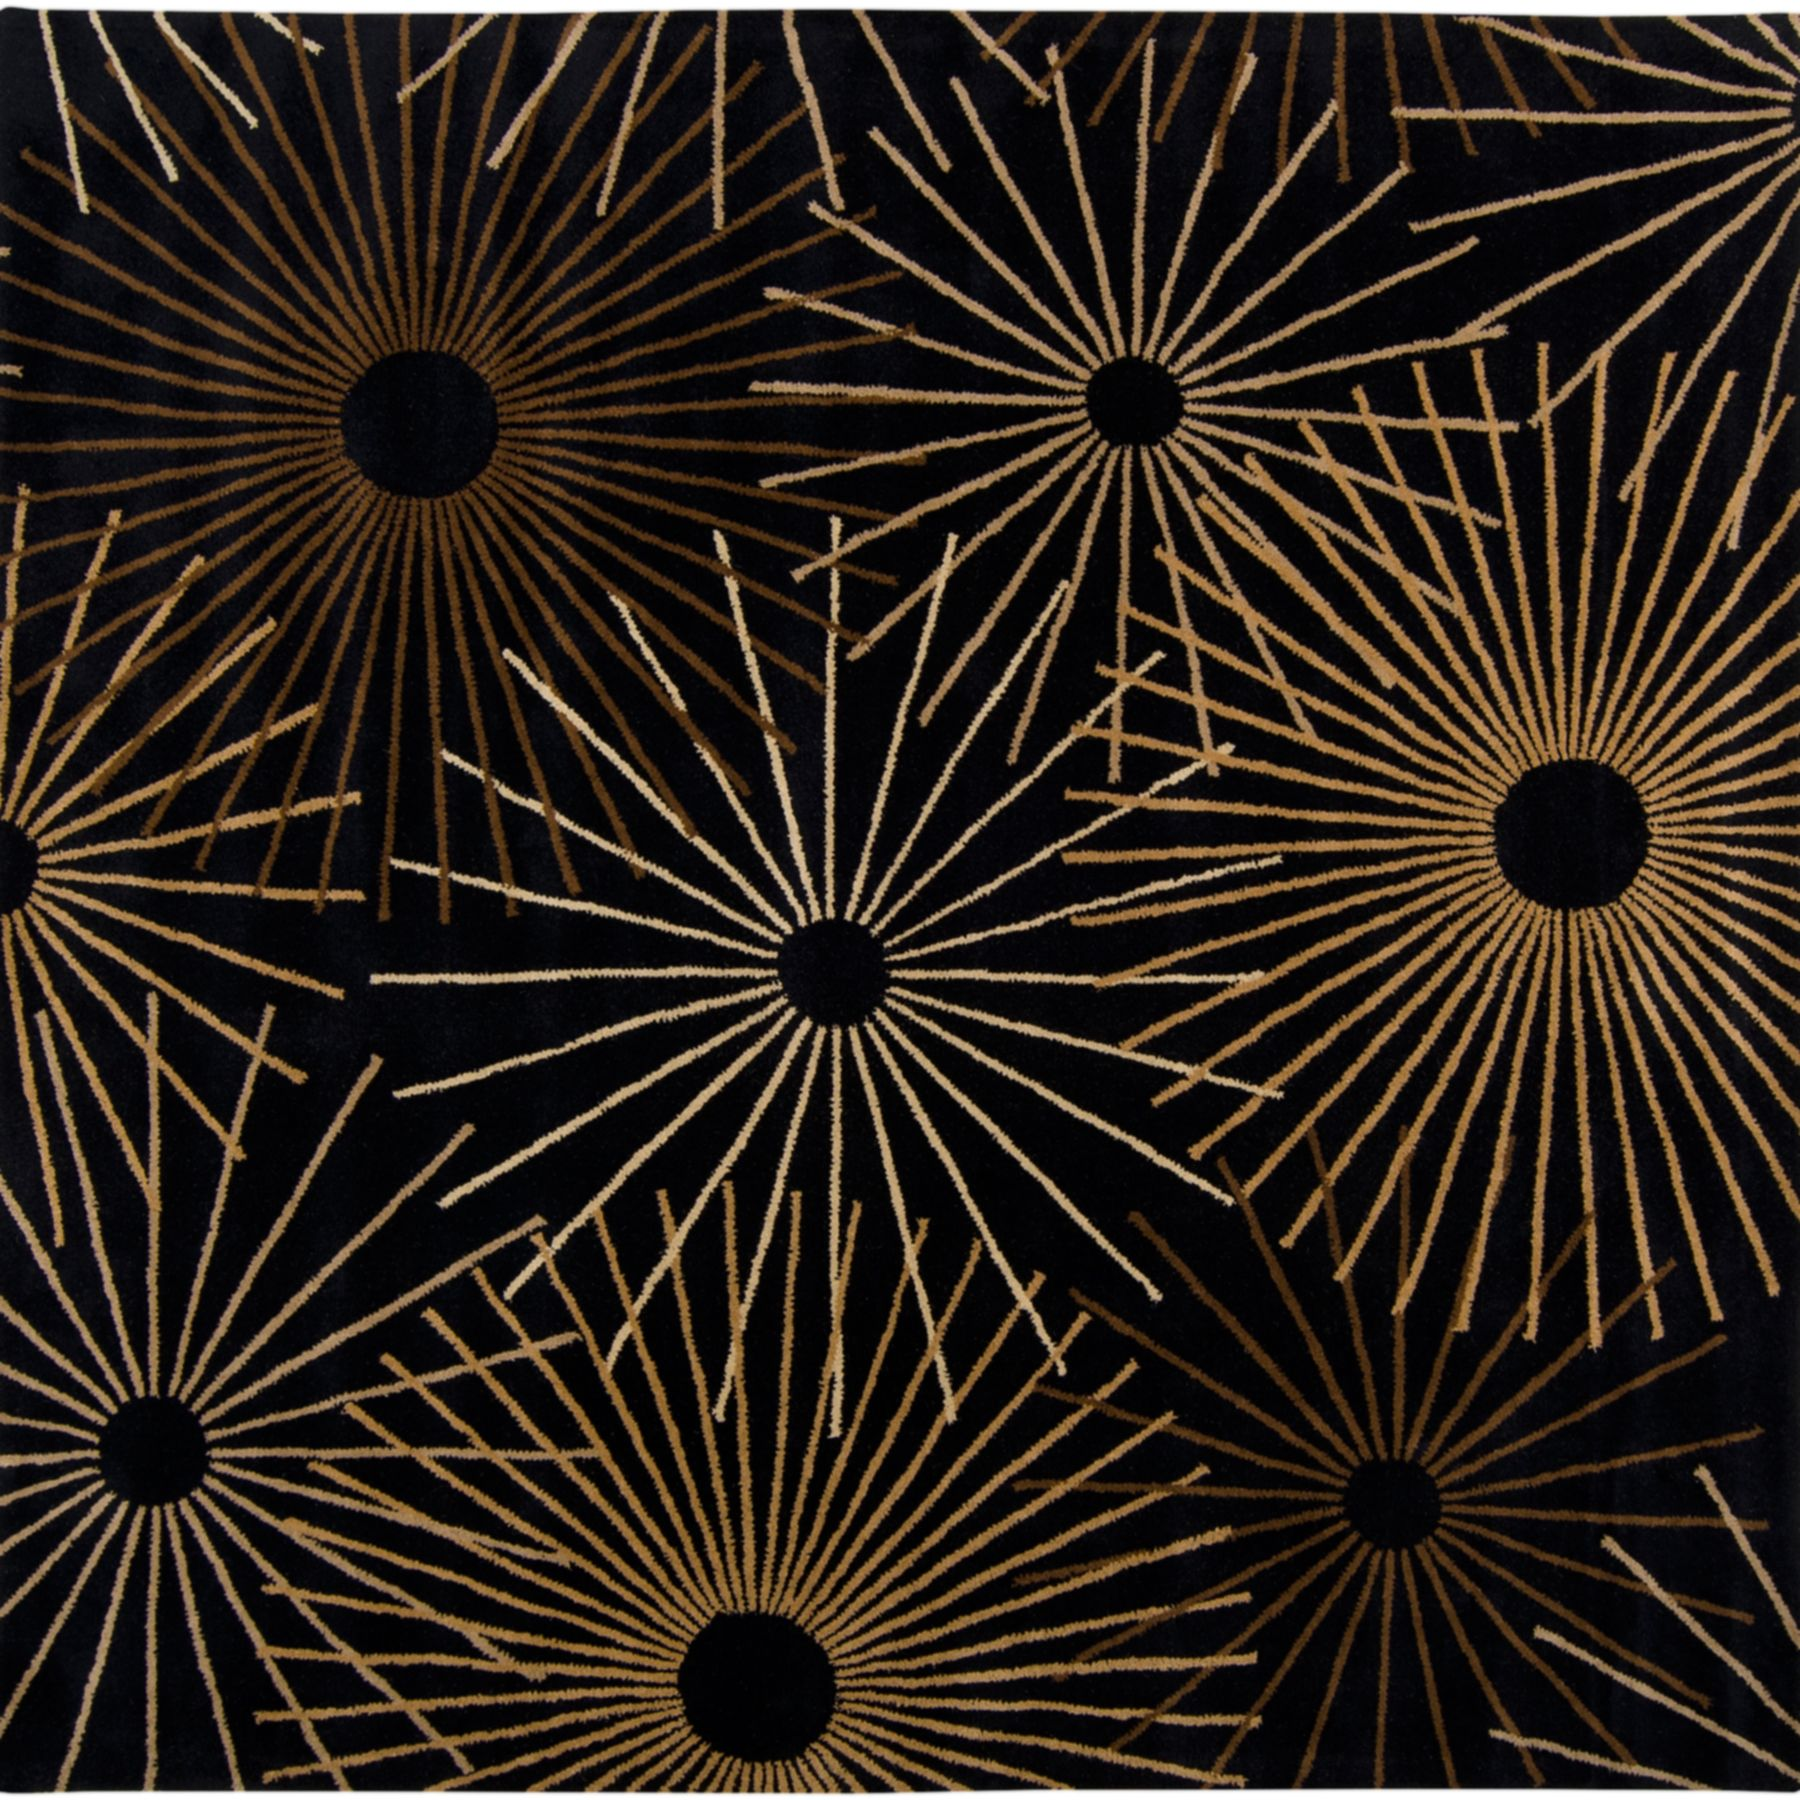 Surya Forum 4' x 4' Square Hand Tufted Wool Rug in Black PartNumber: 070V005050703000P